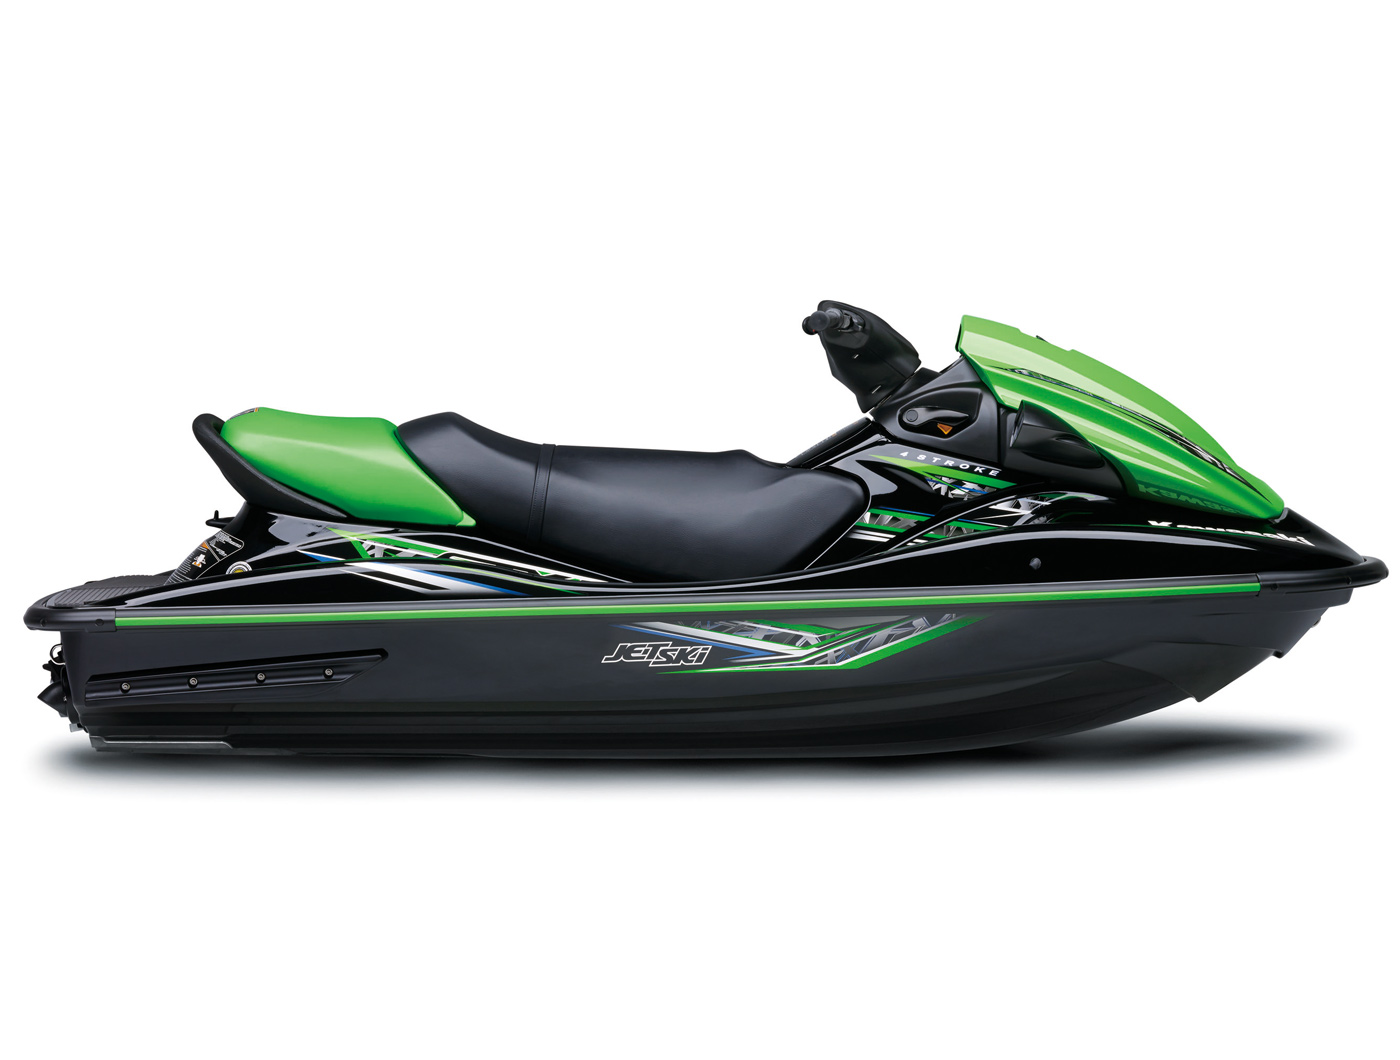 Kawasaki s 310-Horsepower Jet Ski Is Pure Madness - Jalopnik